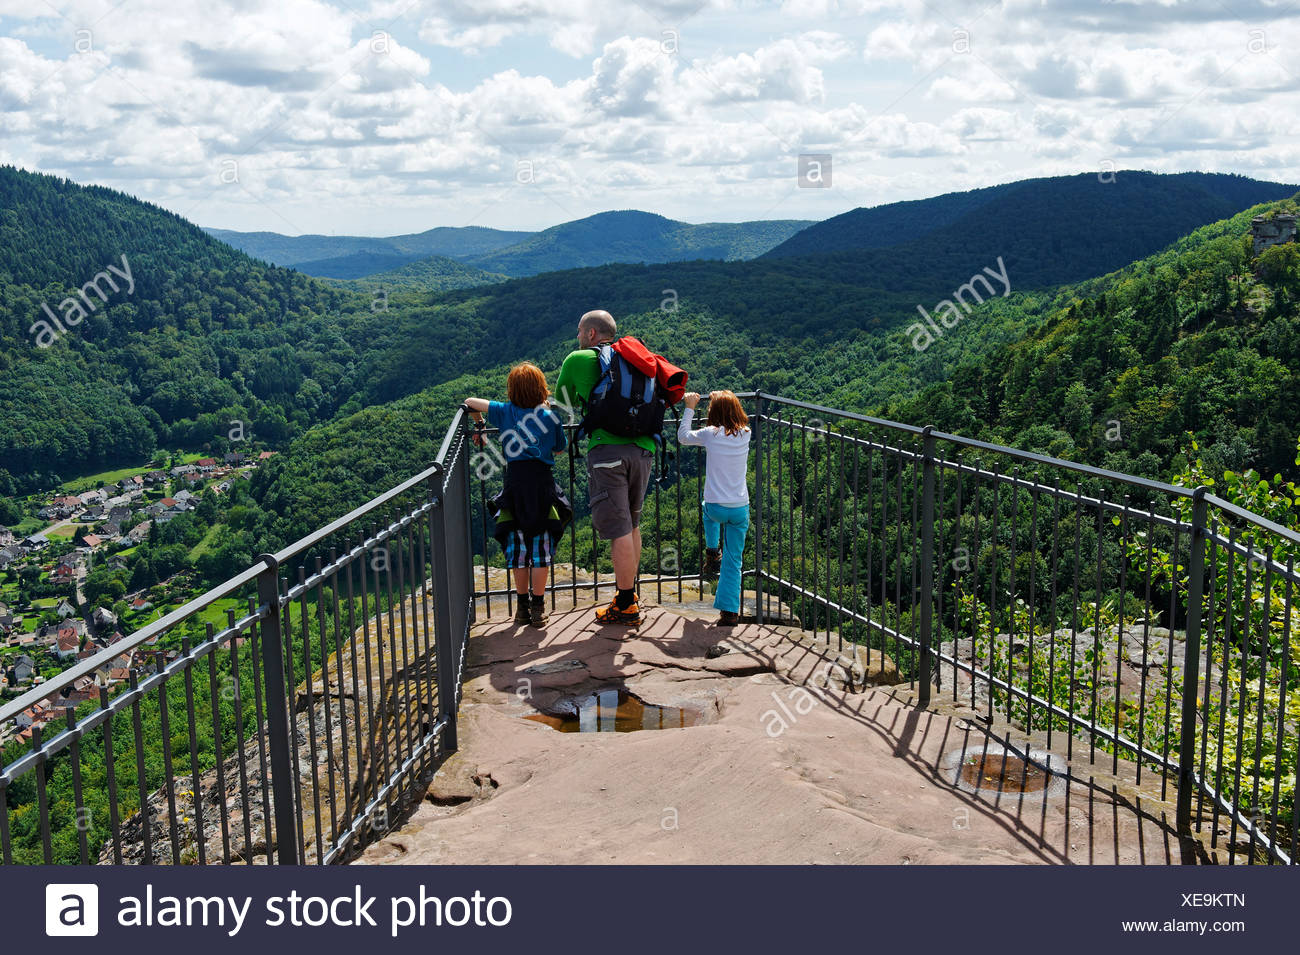 Family on the lookout of Burg Trifels Castle near Annweiler am Trifels, German Wine Route, Rhineland-Palatinate, Germany, Europe - Stock Image